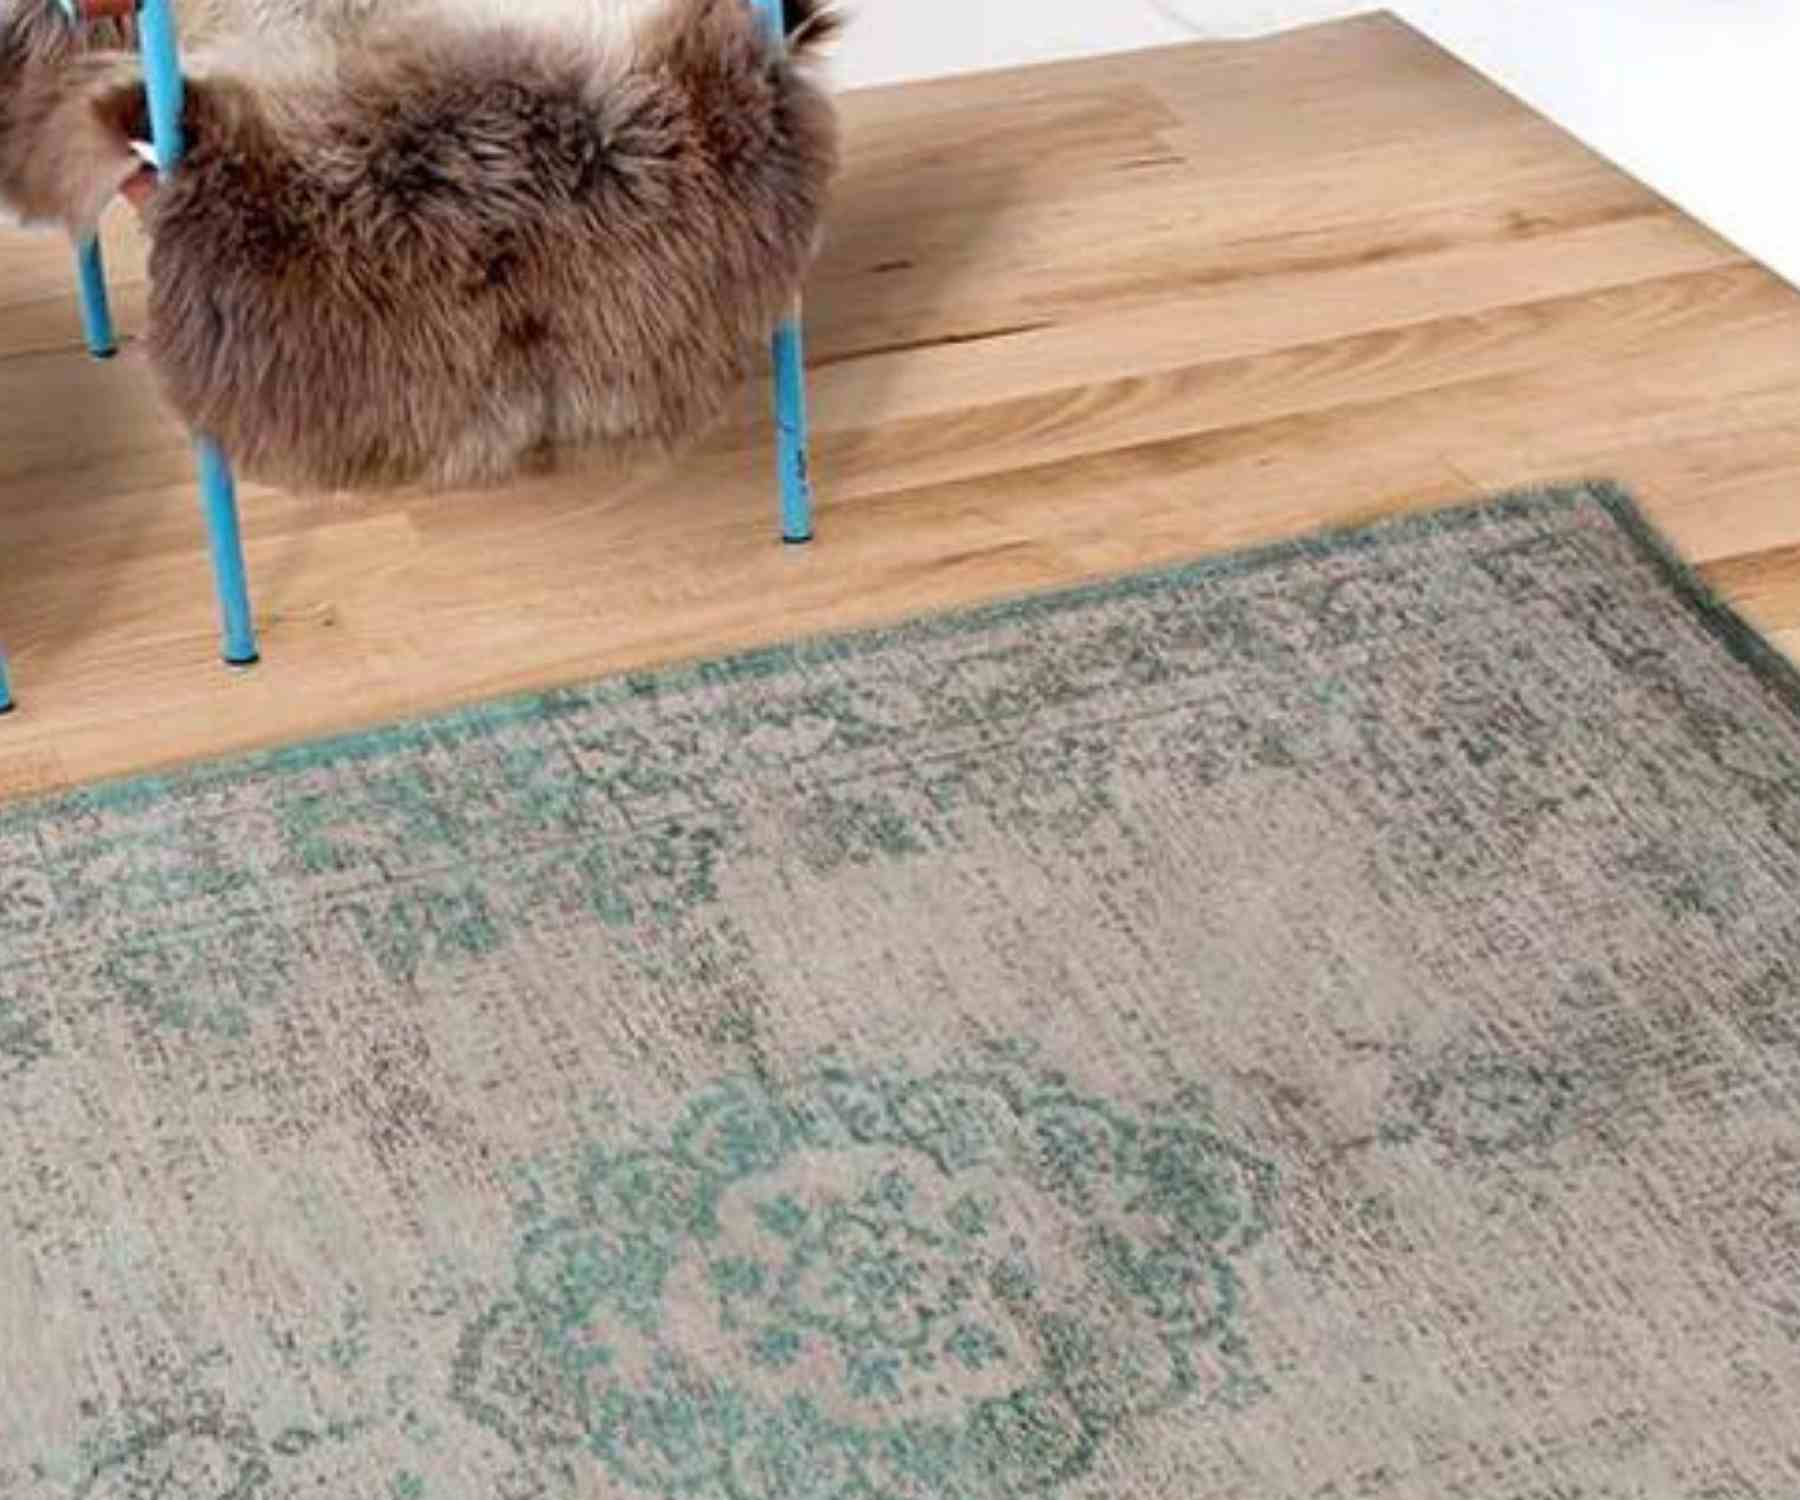 Faded green rug on wooden floor with metal chair and fur throw